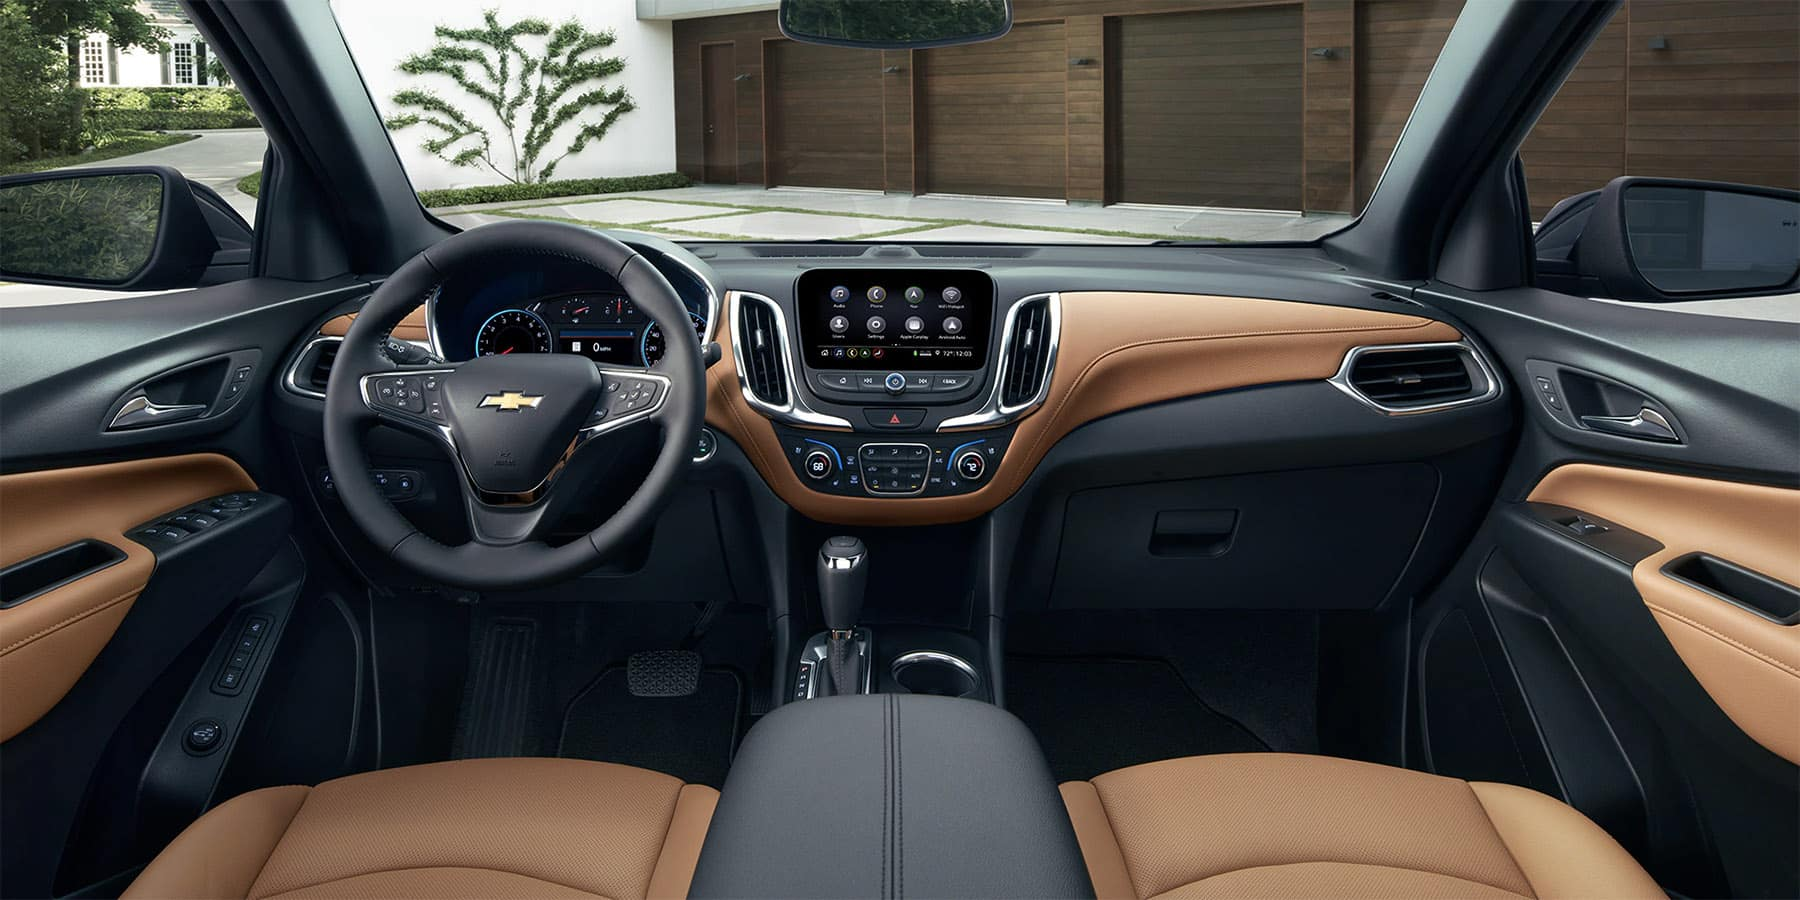 2020 Chevrolet Equinox front interior seating